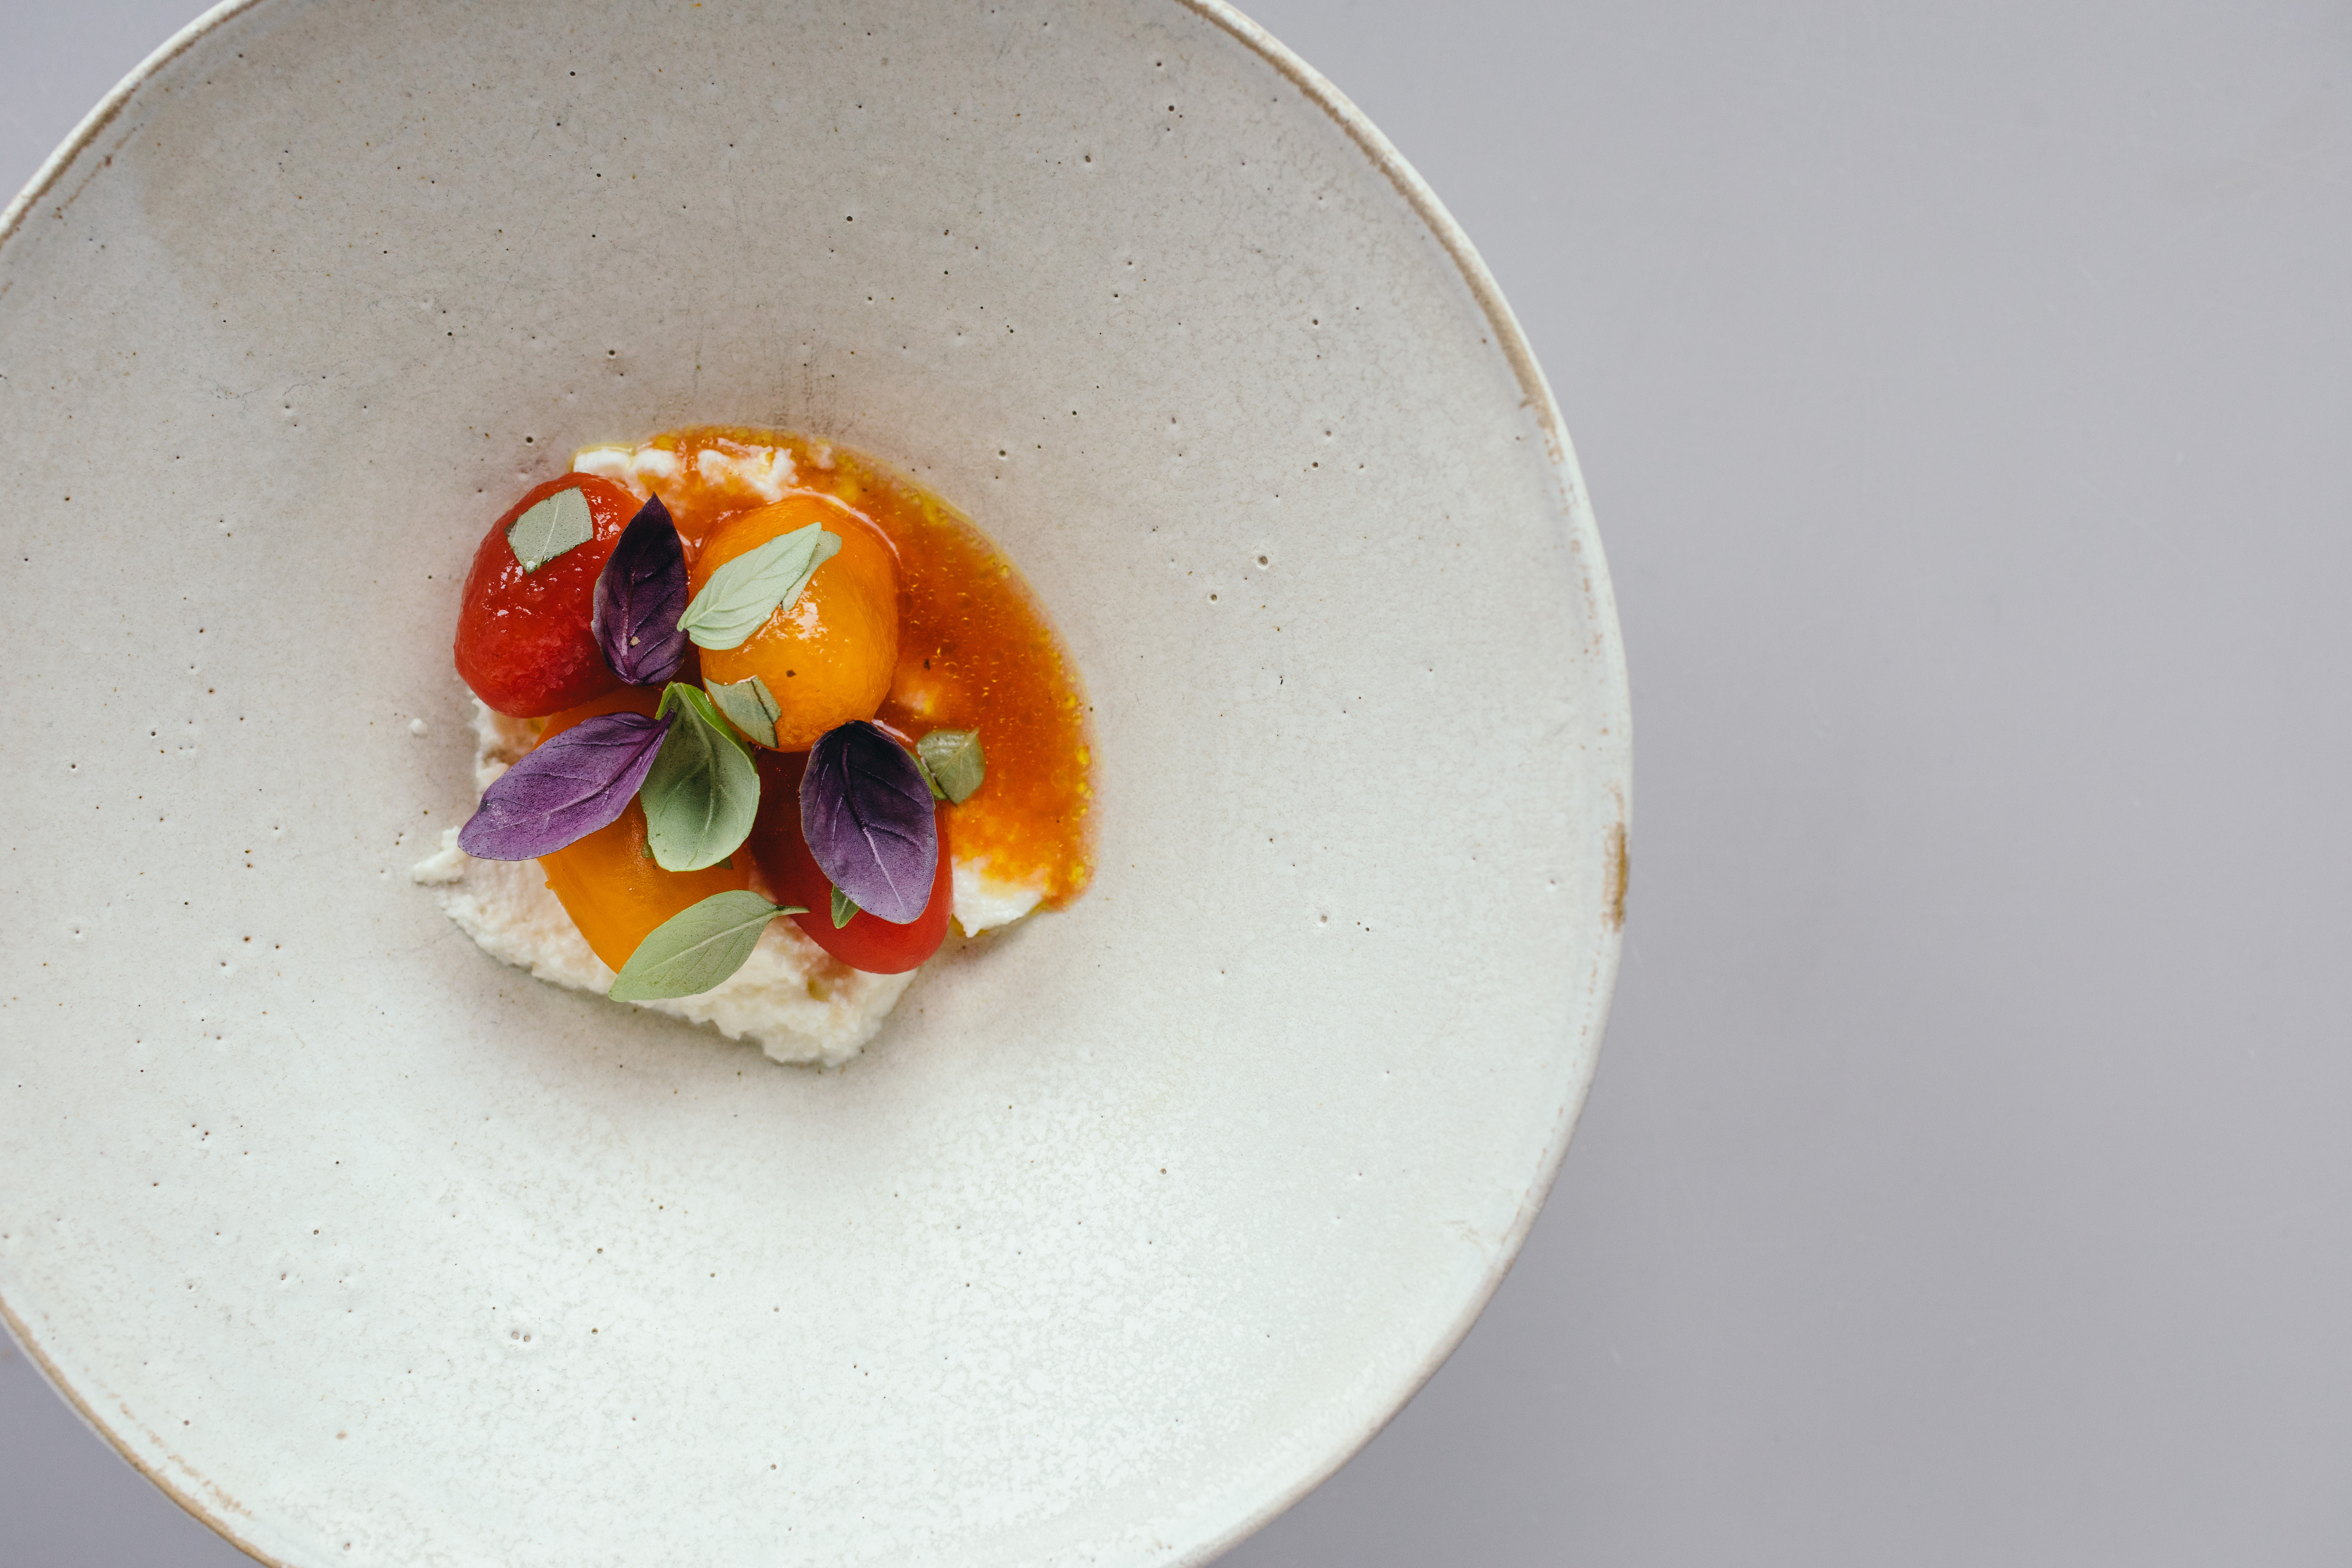 Food photography for The Guardian